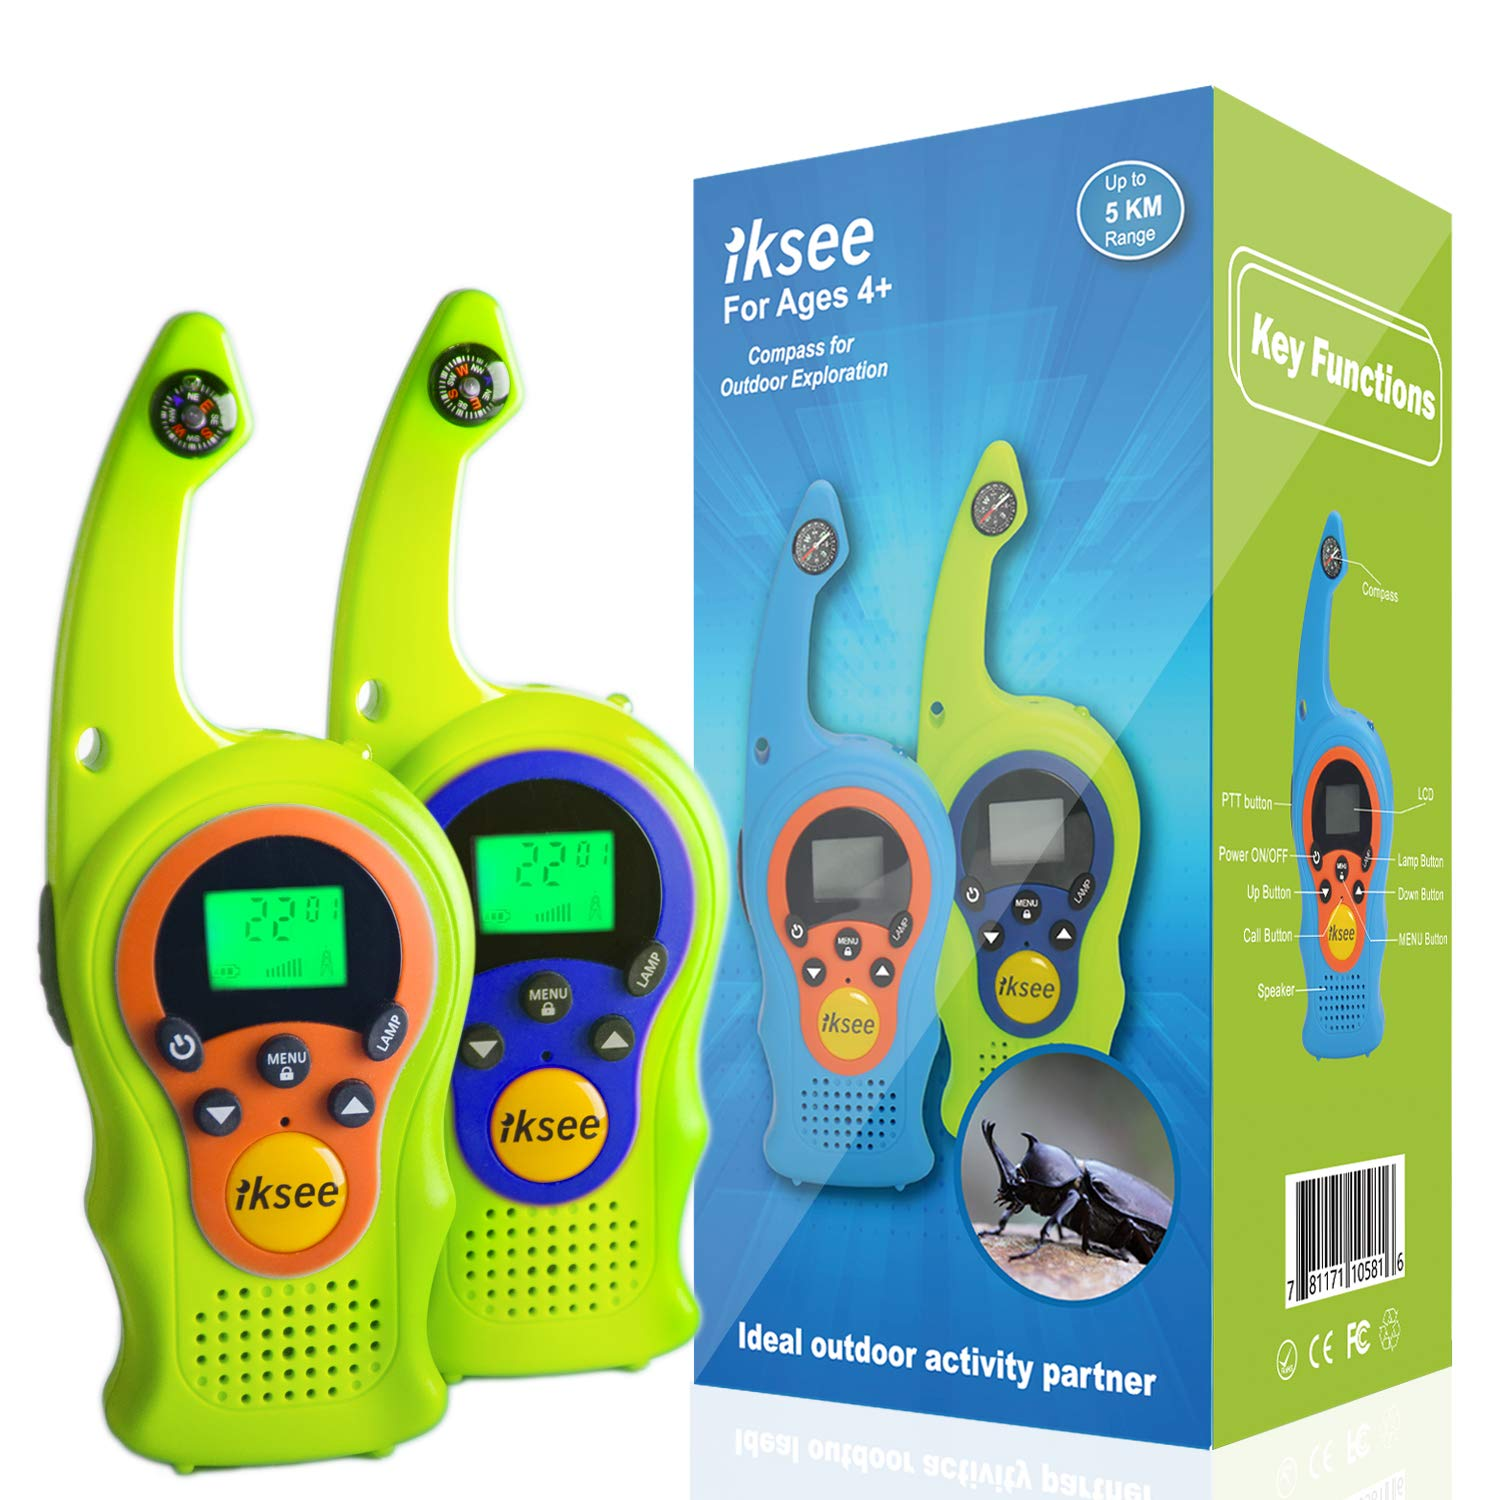 iKsee 2019 Must-Have Dung Beetle Walkie Talkie Set for Adults and Kids with Compass Flashlight, 3+ Mile Long Range Two Way Radios Toys Gifts for 5-12 Boys Girls Awards and Family Games (Green,1 Pair)